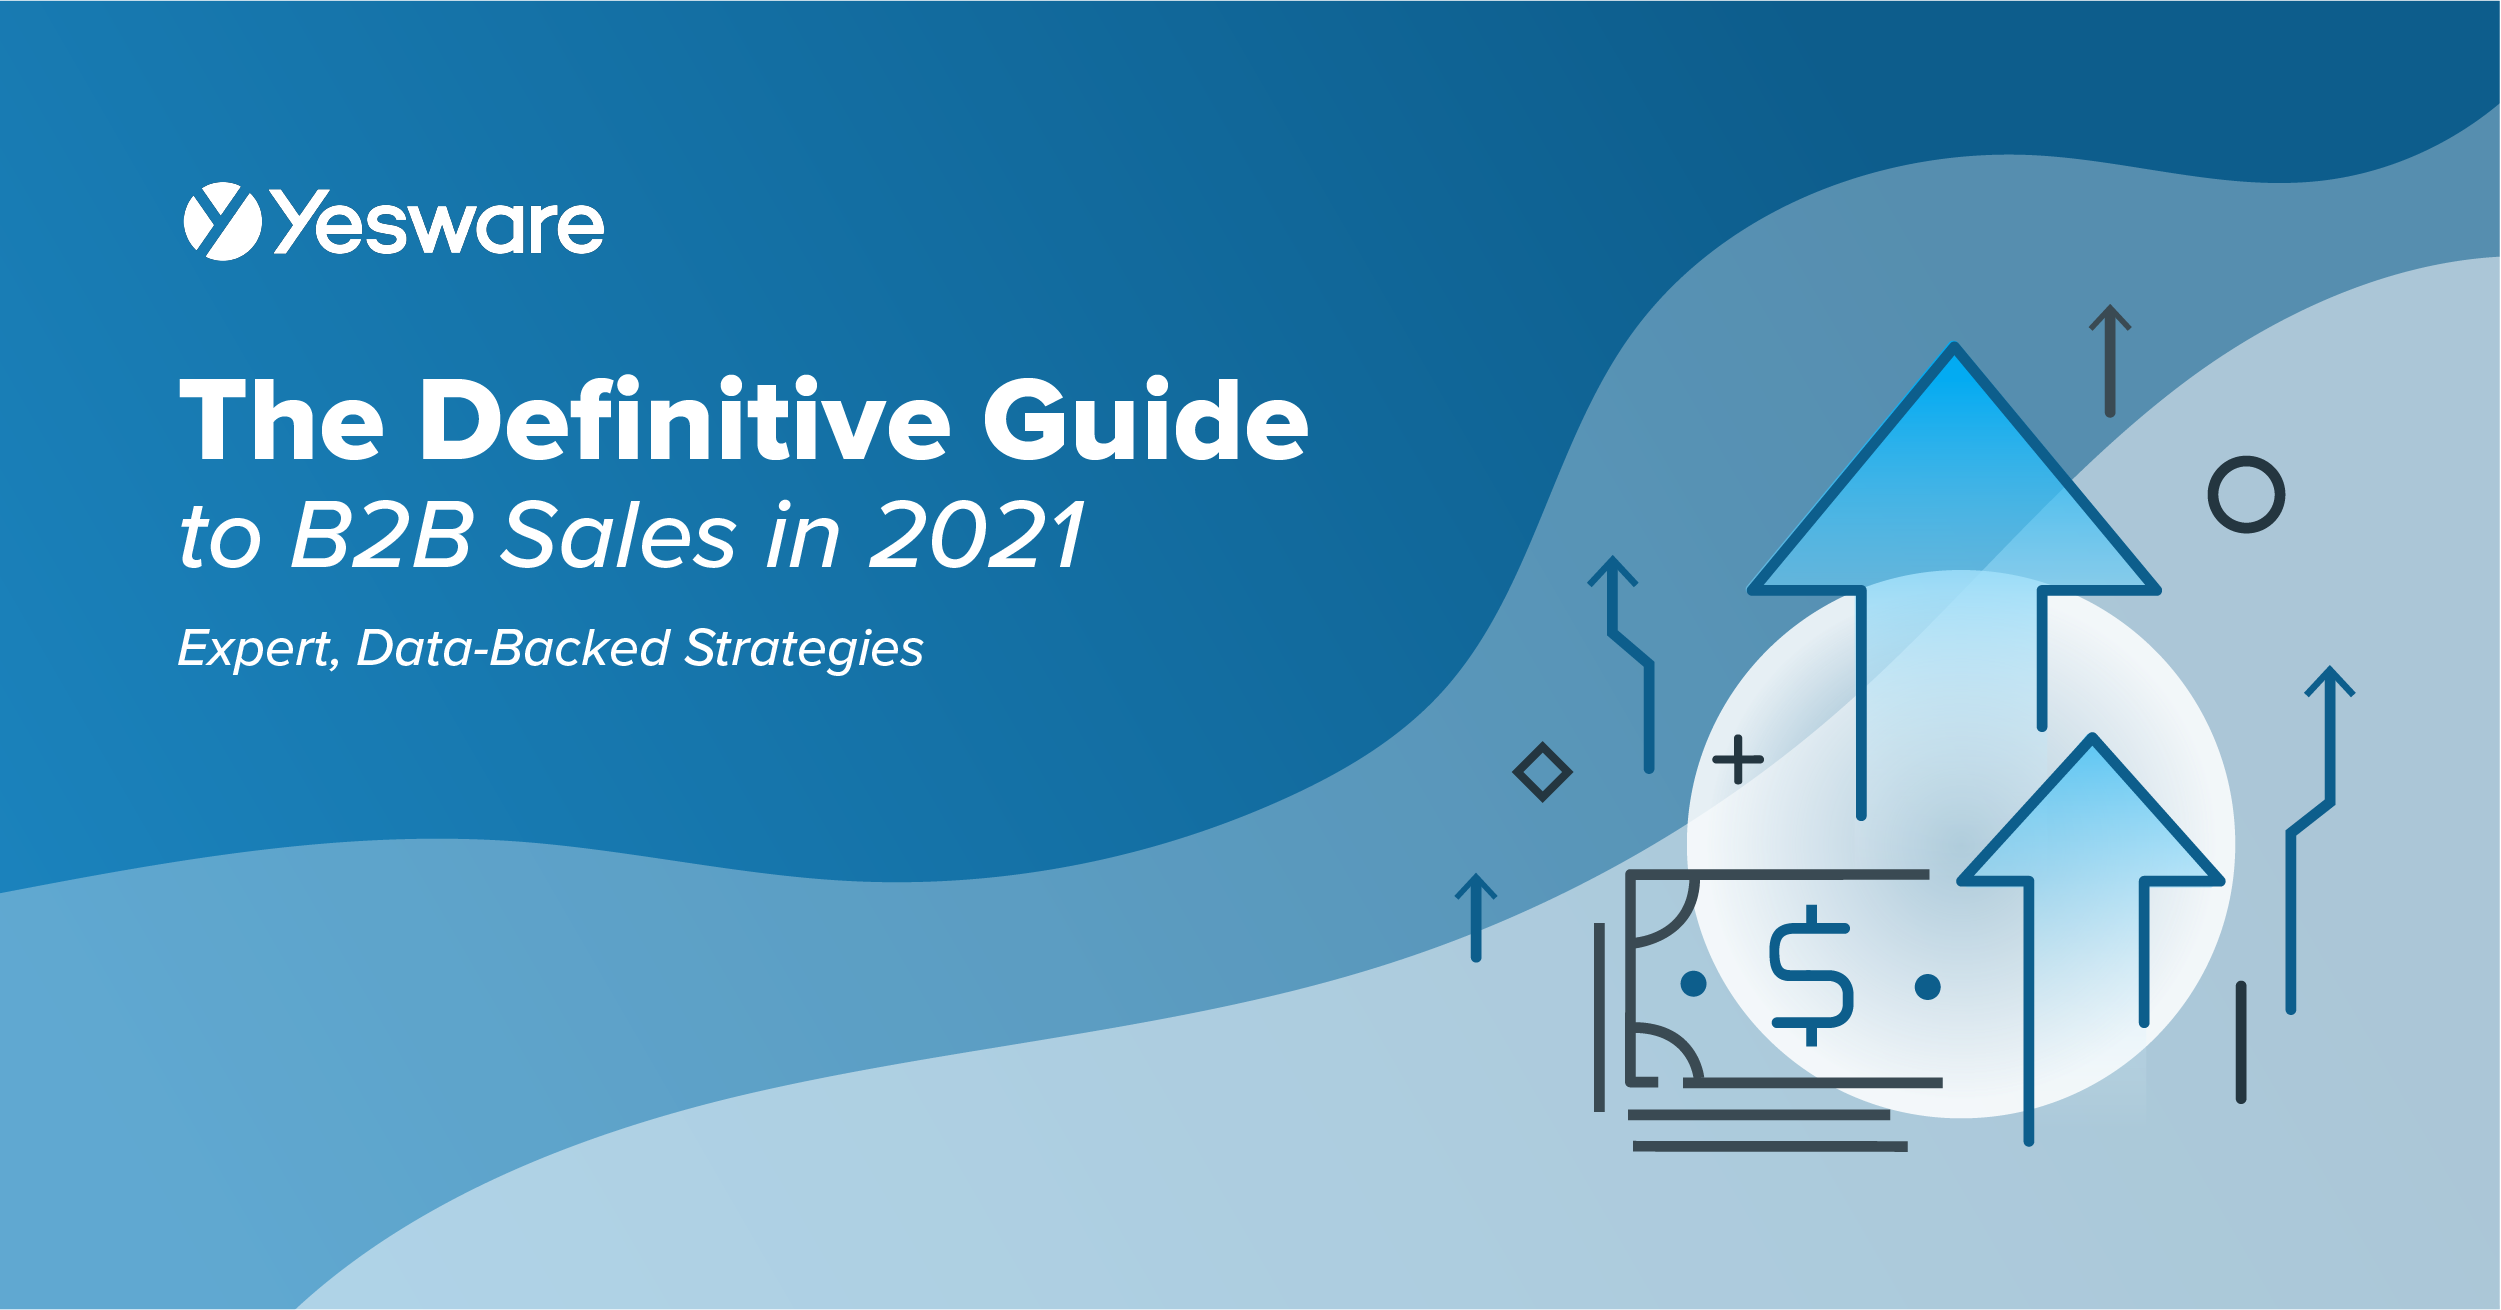 The Definitive Guide to B2B Sales in 2021 (Expert, Data-Backed Strategies)